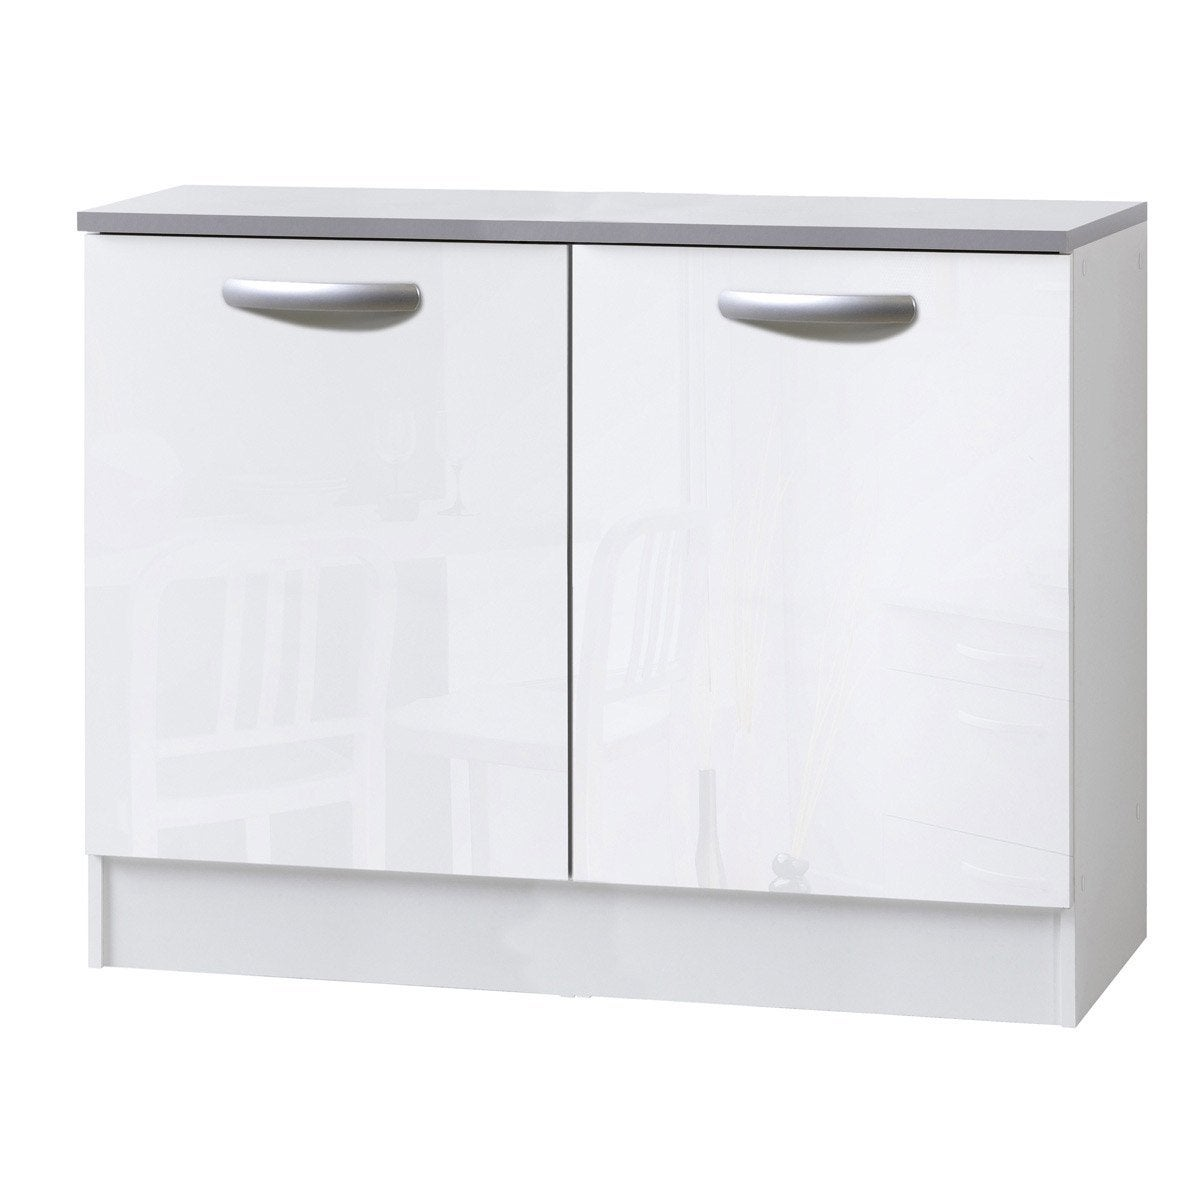 Meuble de cuisine bas 2 portes blanc brillant h86x l120x for Meubles leroy merlin